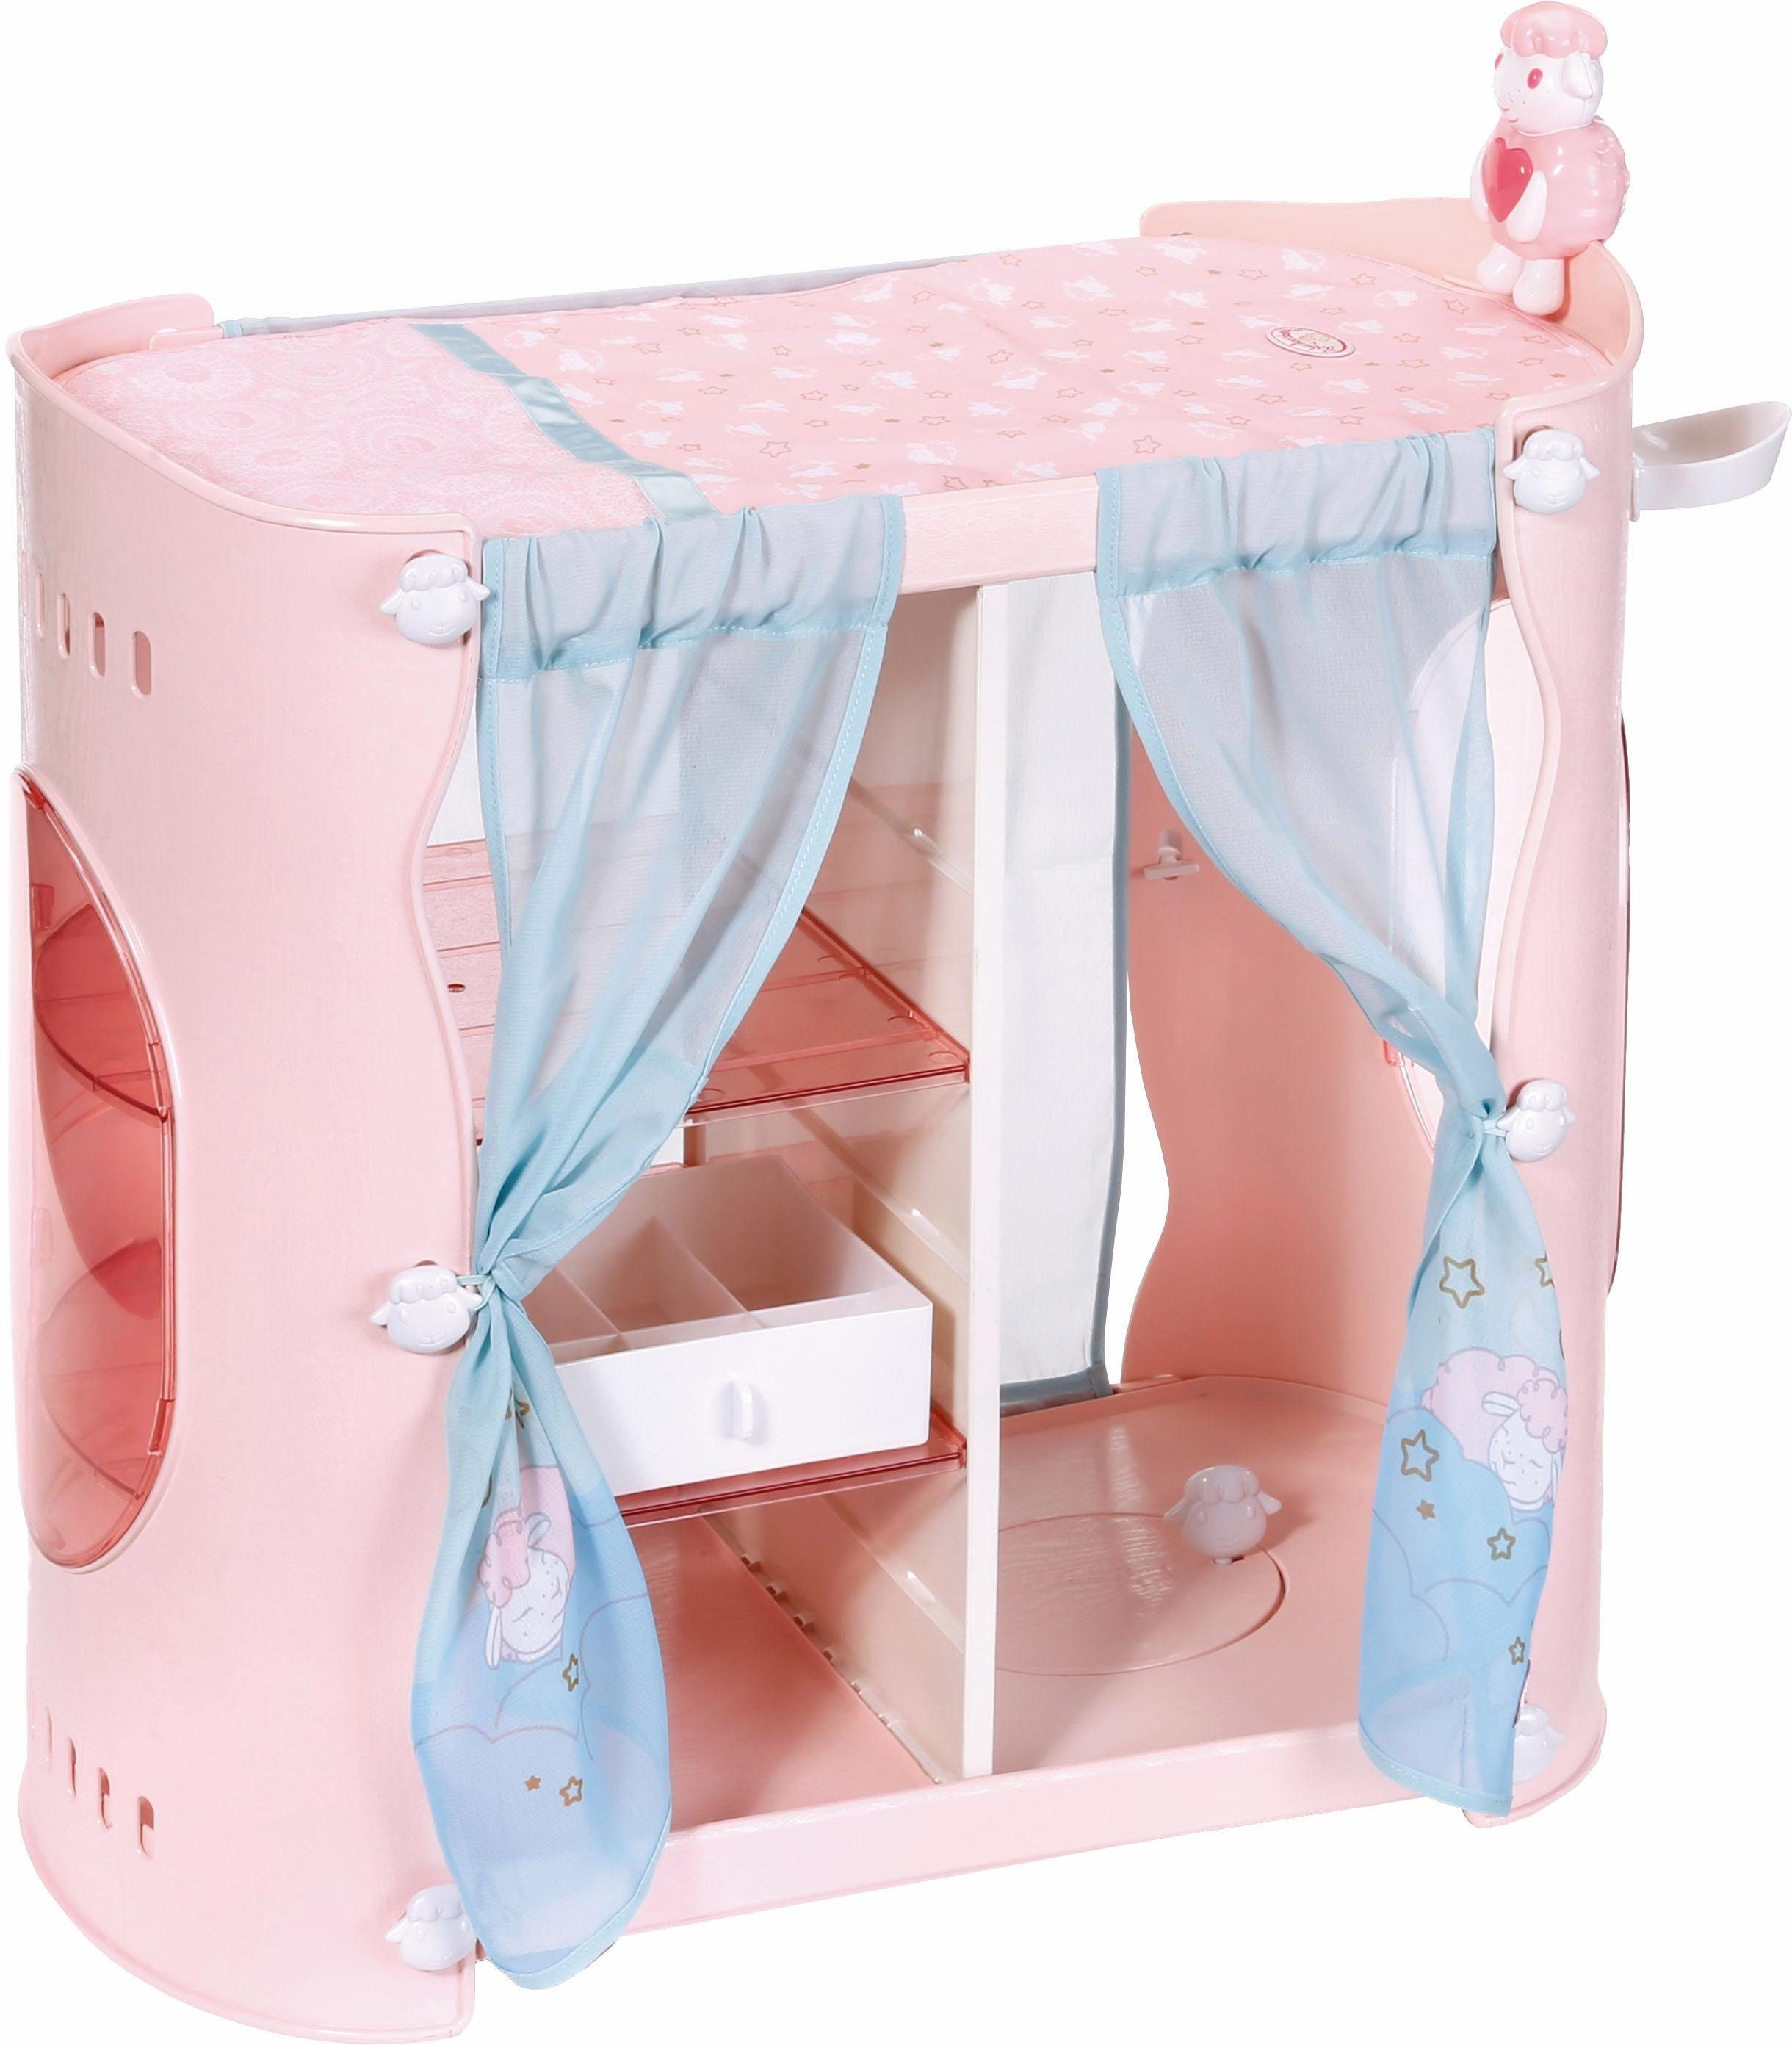 Zapf Creation Puppenmöbel mit Licht- und Soundfunktion, »Baby Annabell® Sweet Dreams 2in1 Schrank«